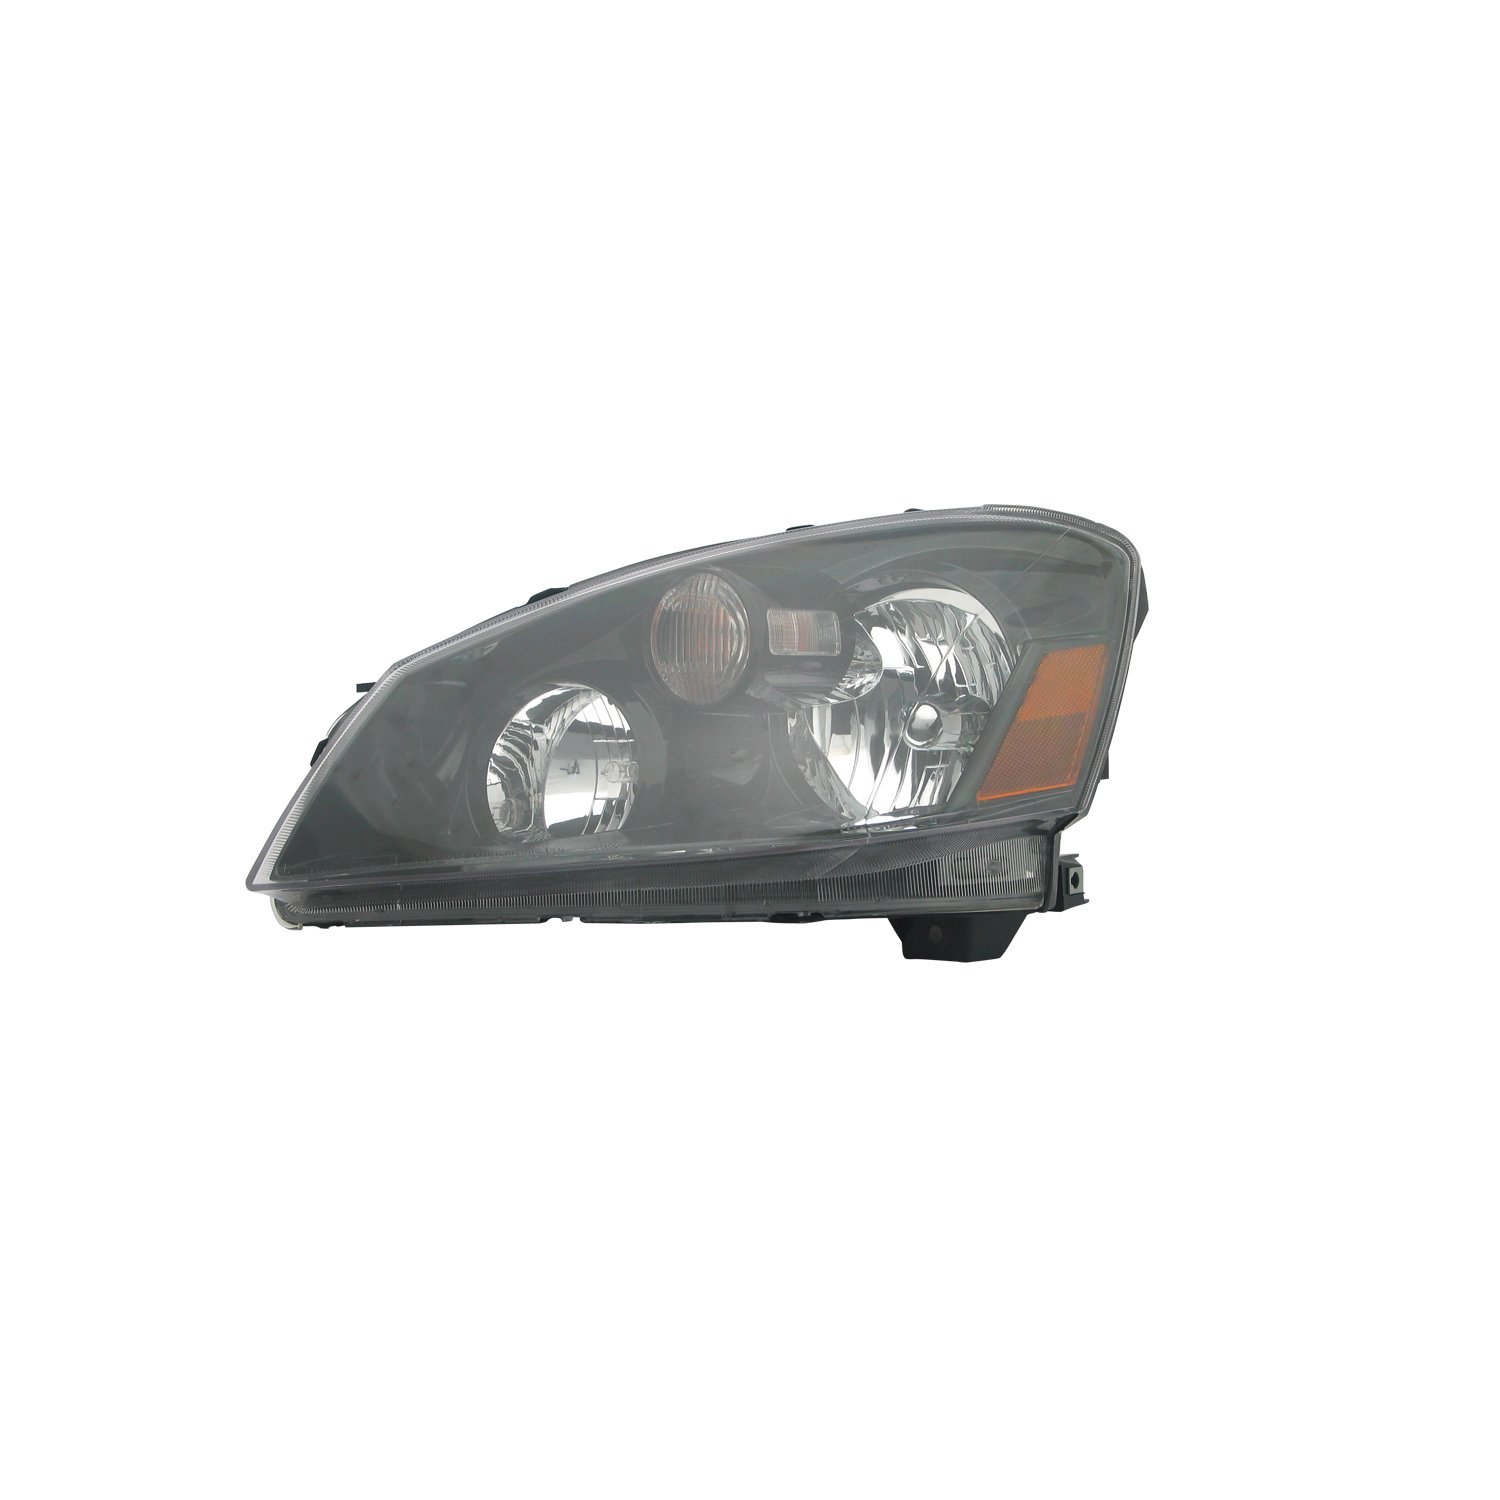 TYC 20-6643-00-1 Nissan Altima Right Replacement Head Lamp